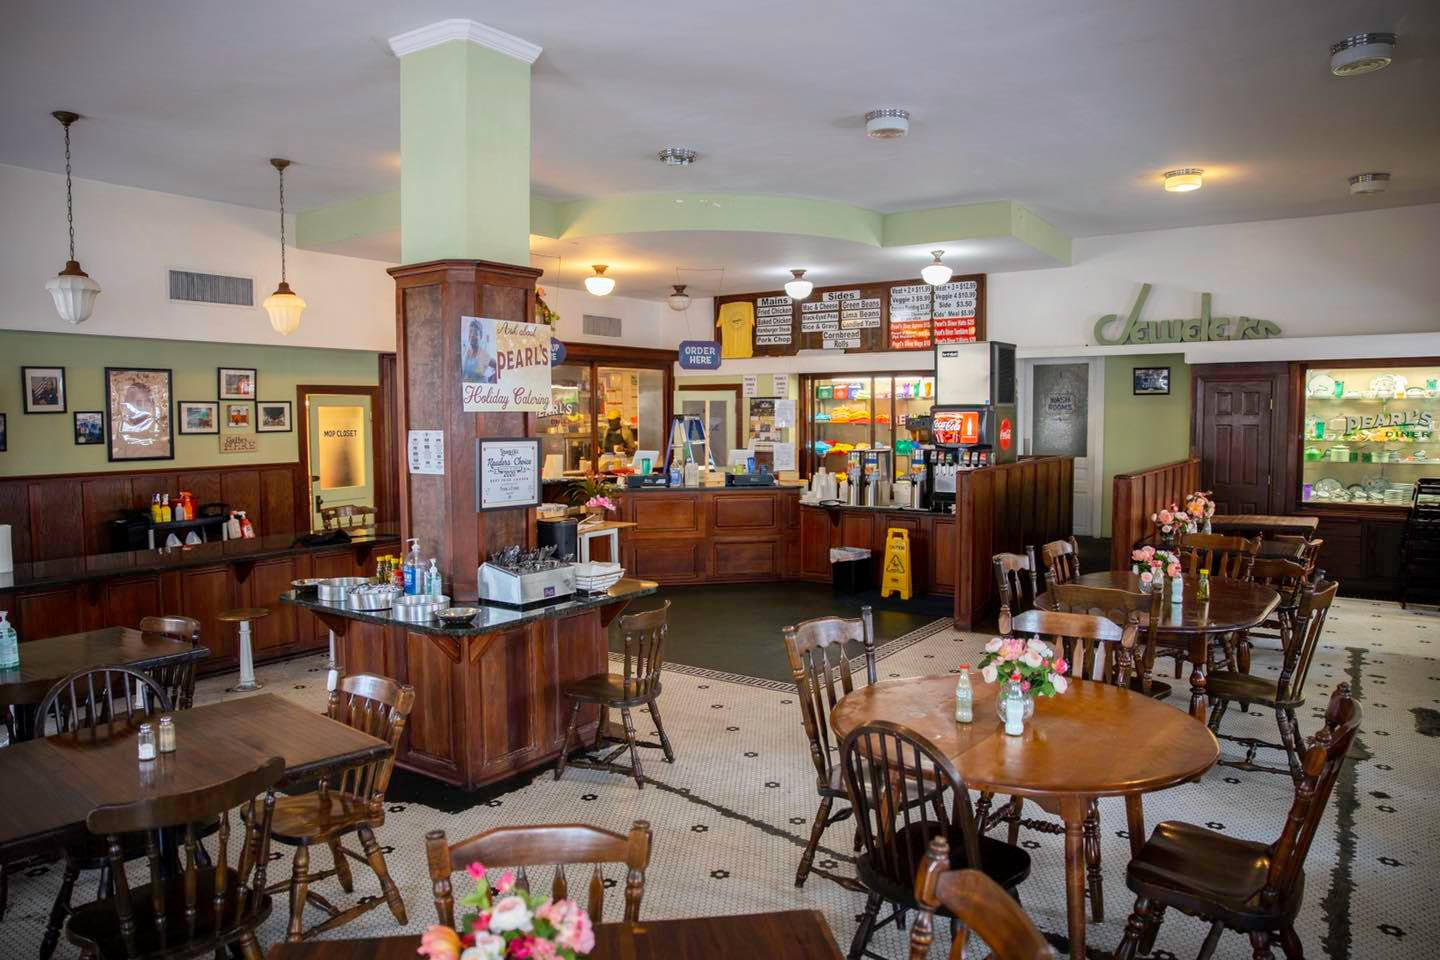 9 Casual Dining Spots in Laurel and Jones County - Pearl's Diner